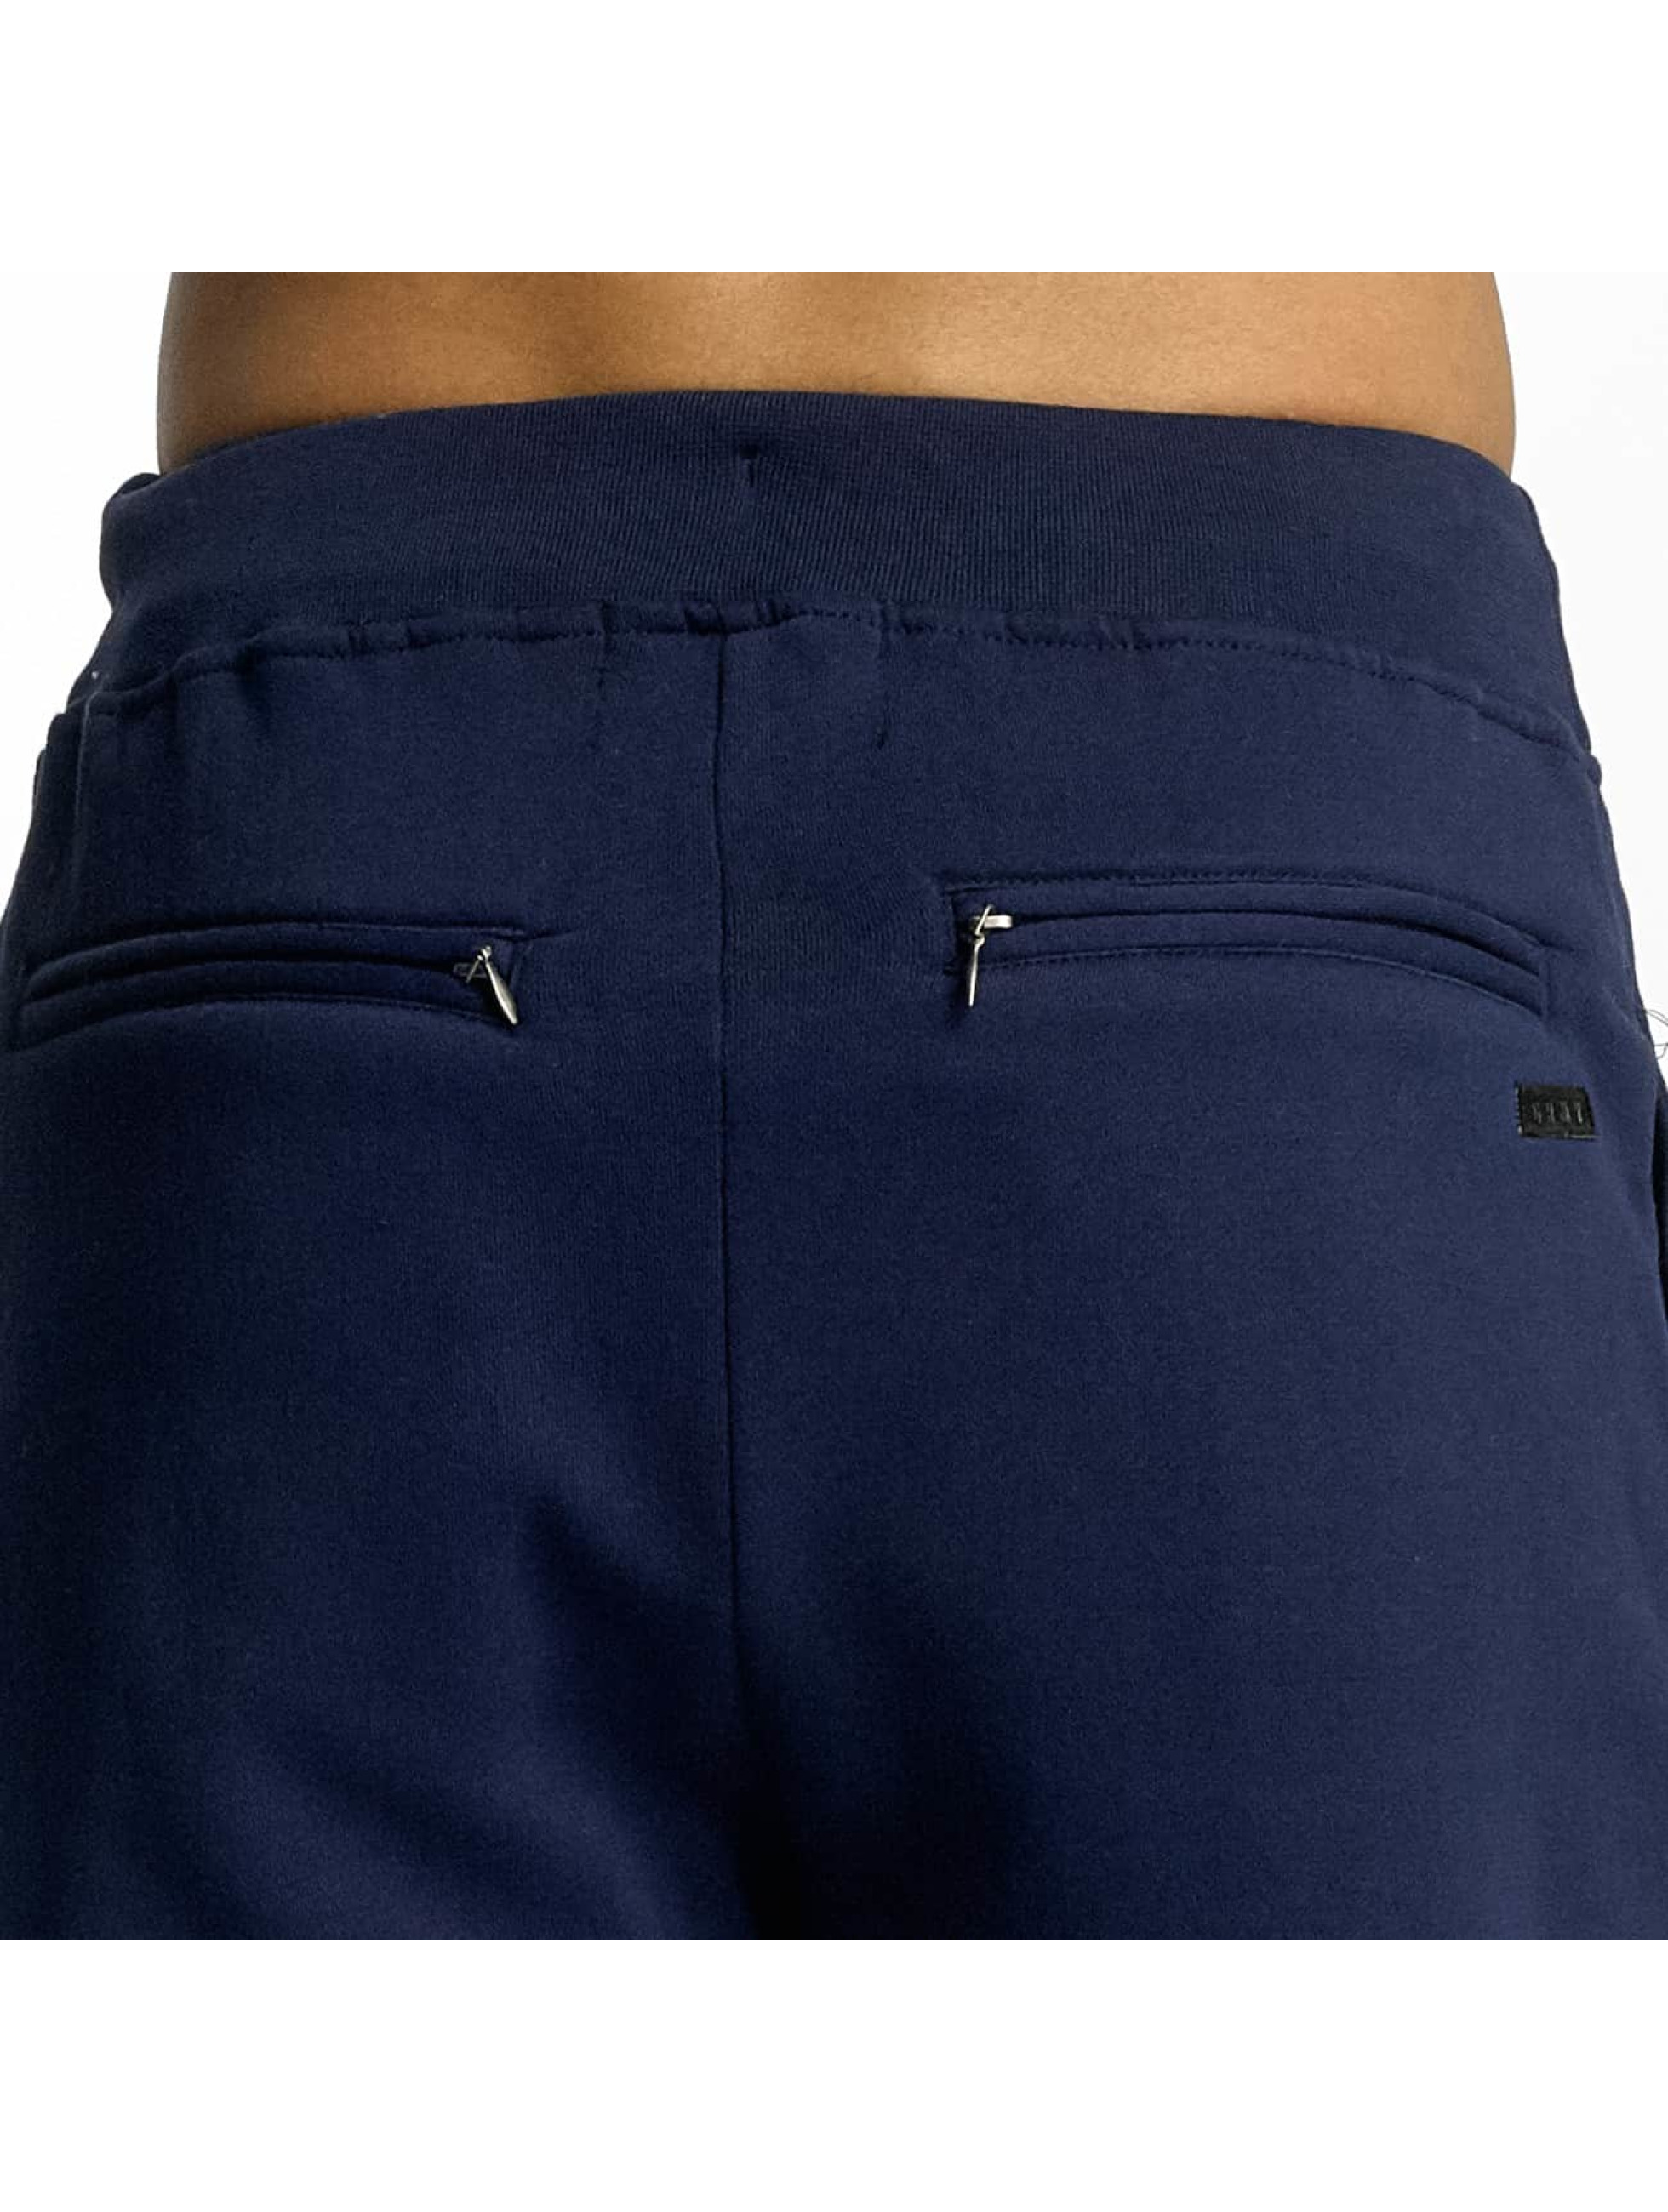 Grimey Wear Jogginghose Core blau